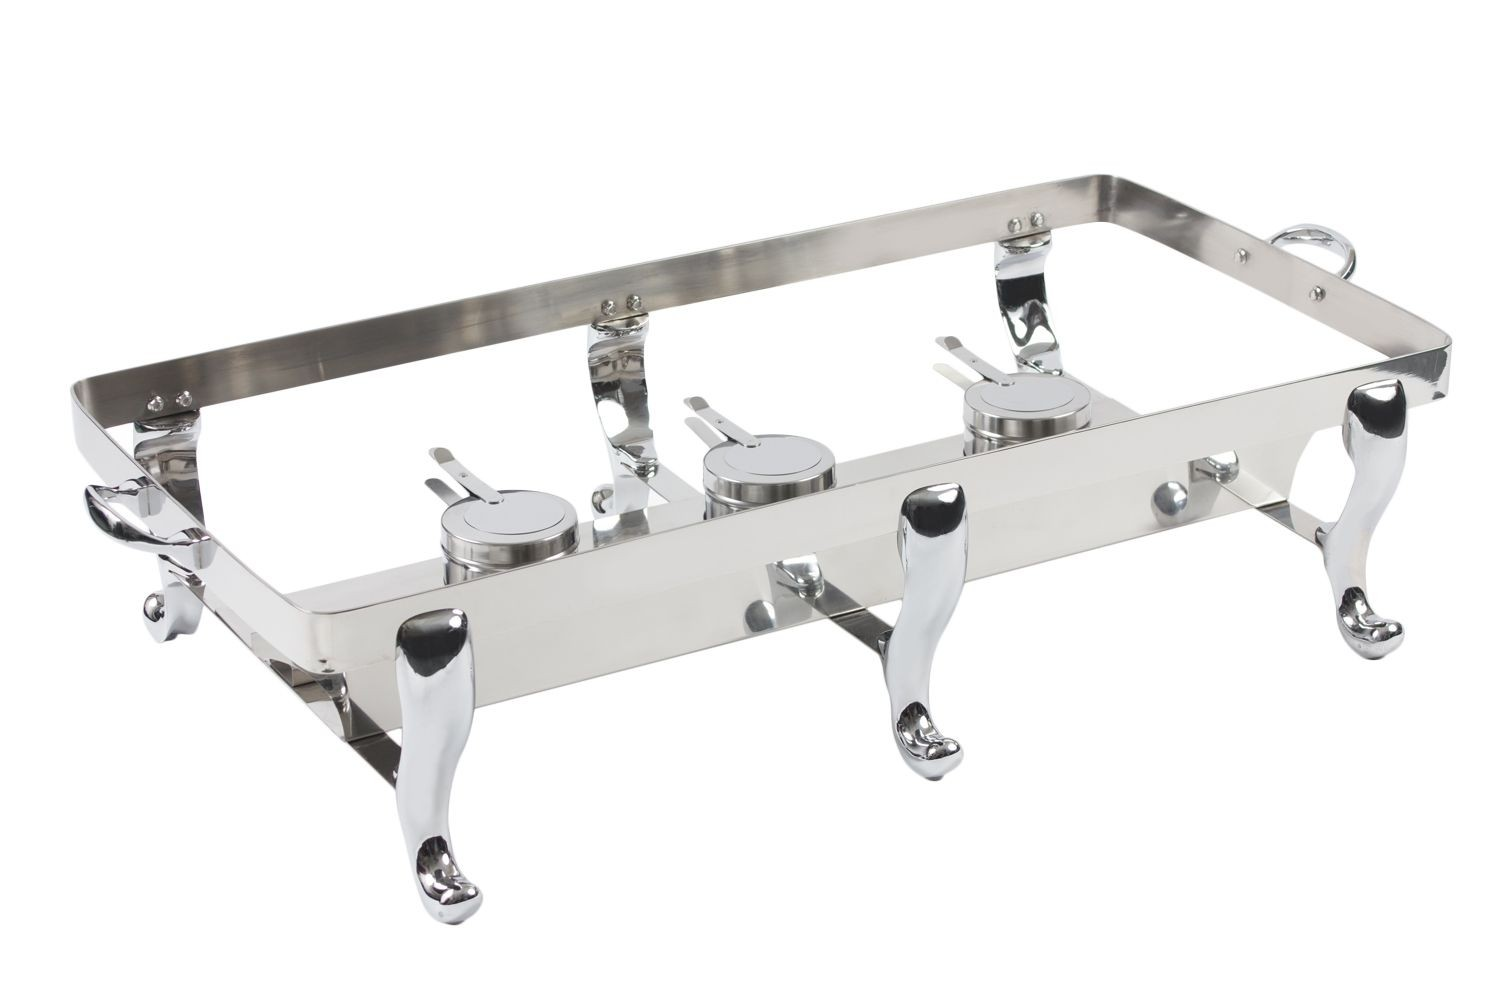 Bon Chef 50128ST-1 Double Display Stand Only with Solid Fuel Holder